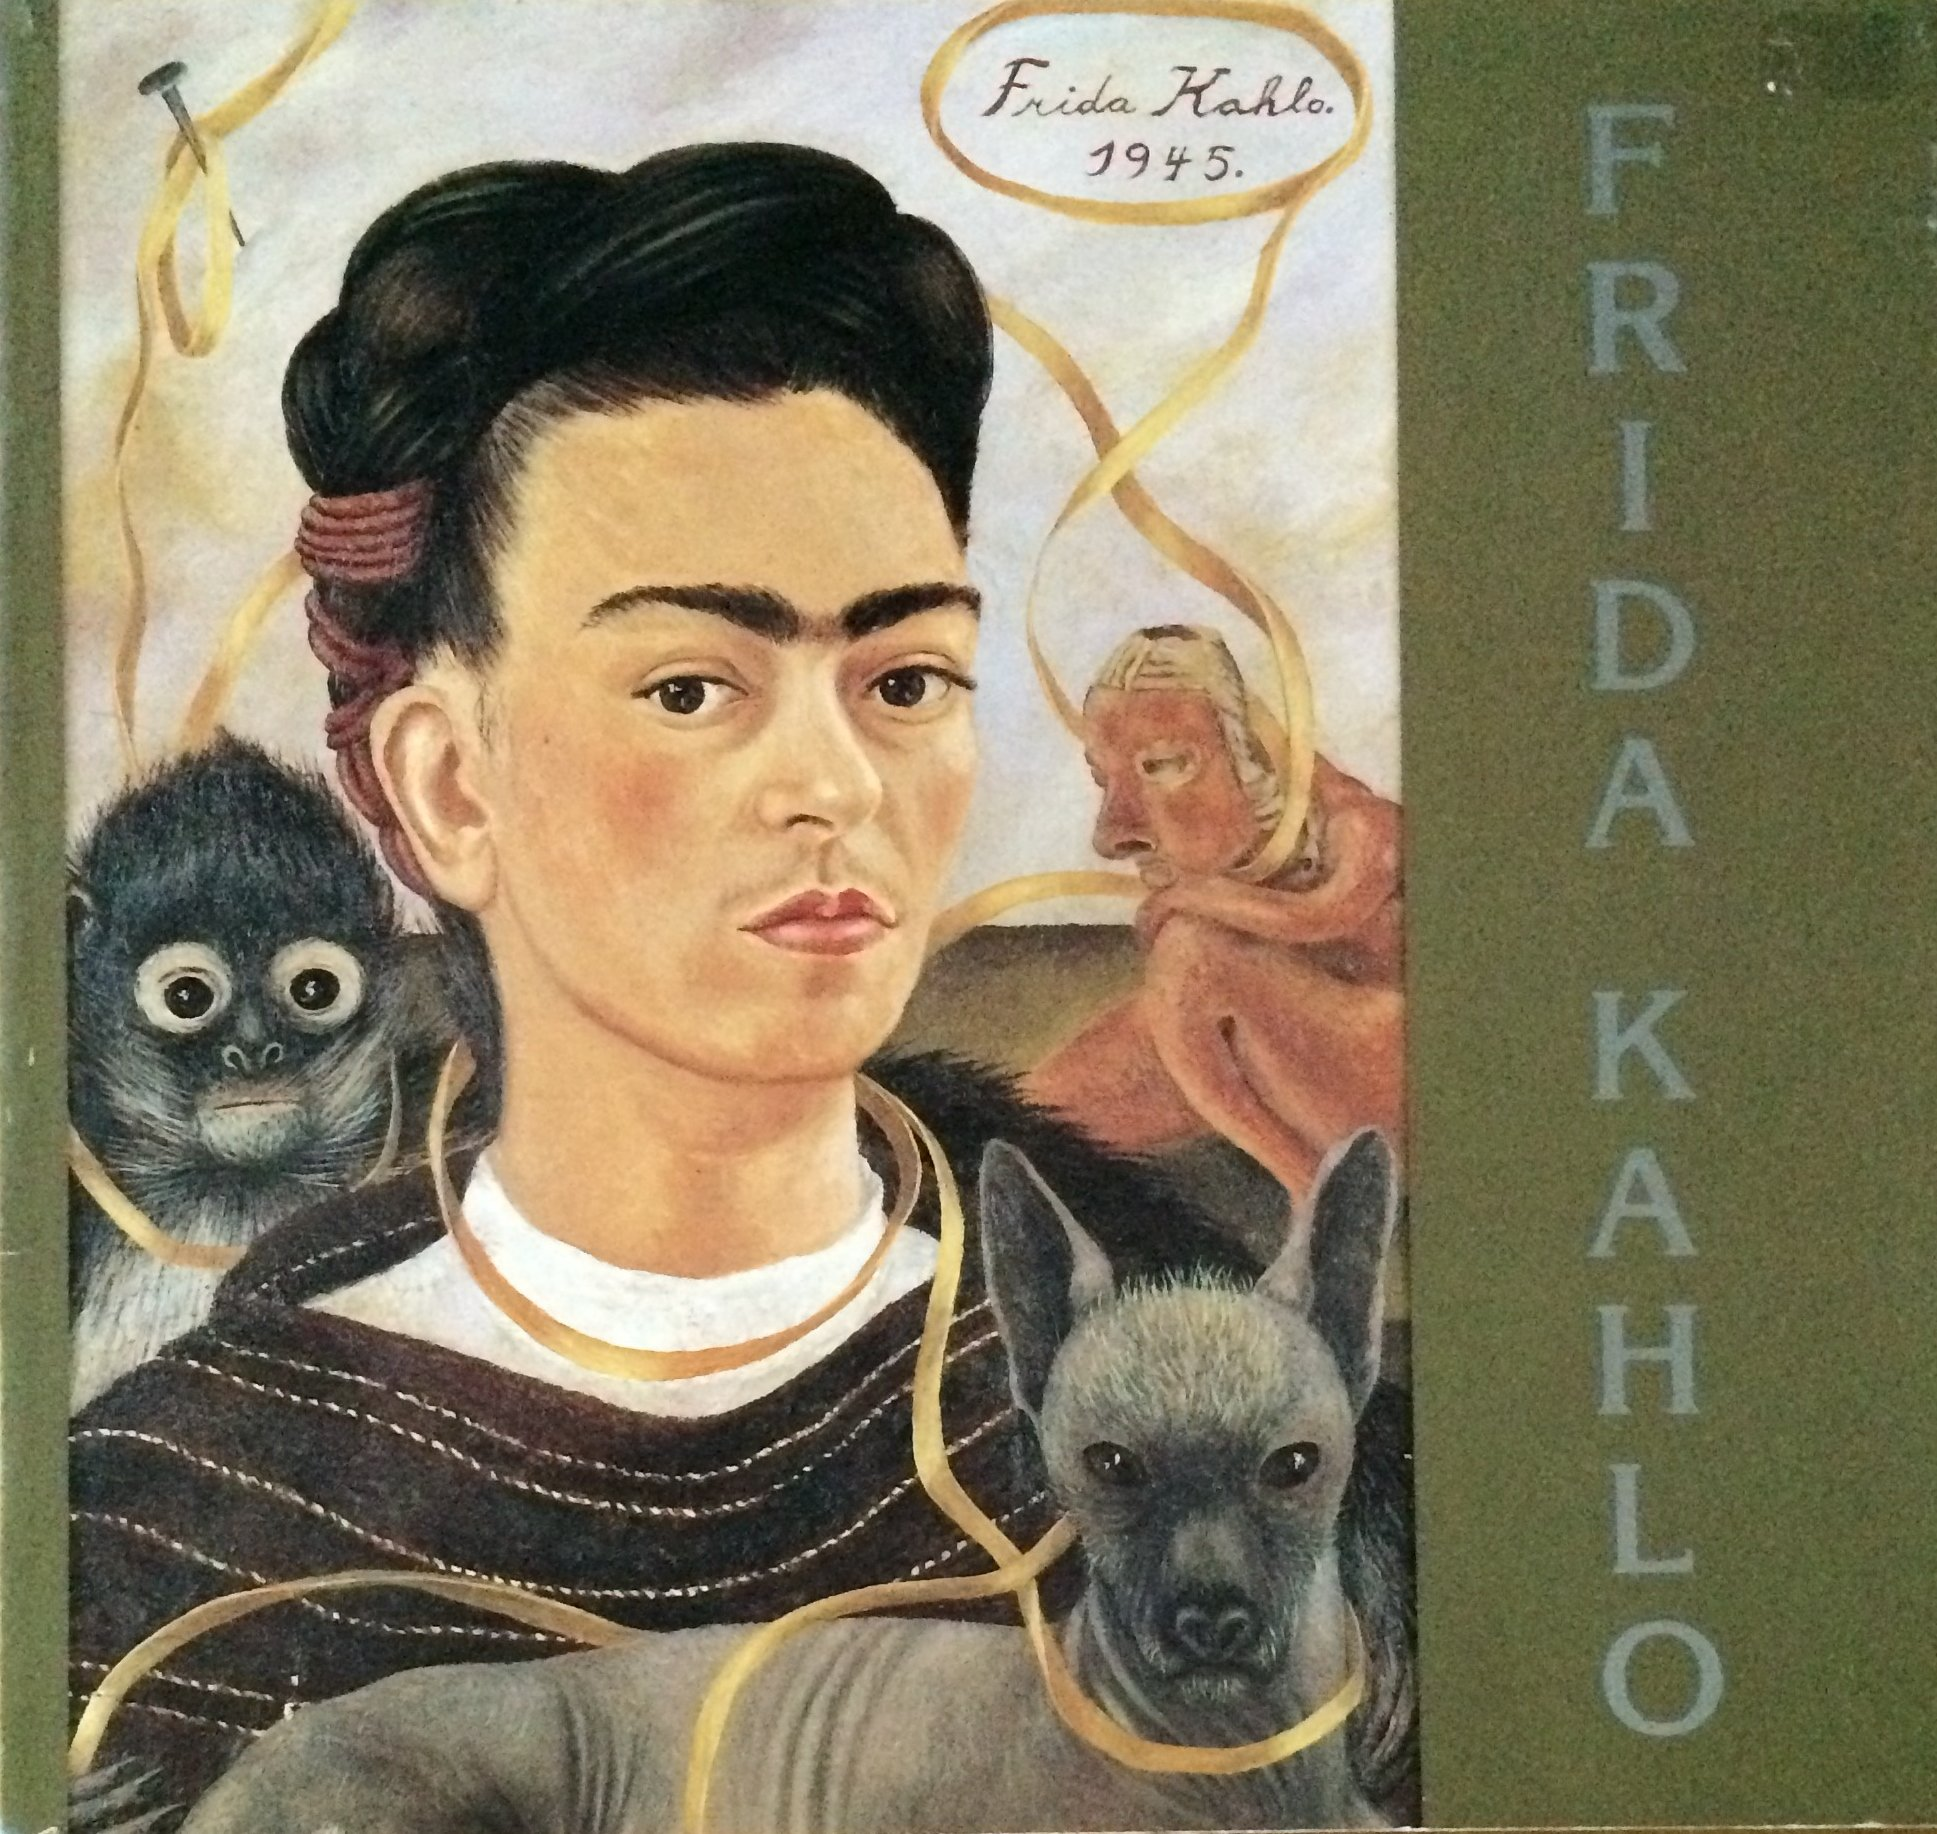 frida kahlo 1907 1954 the collection of dolores olmedo patino